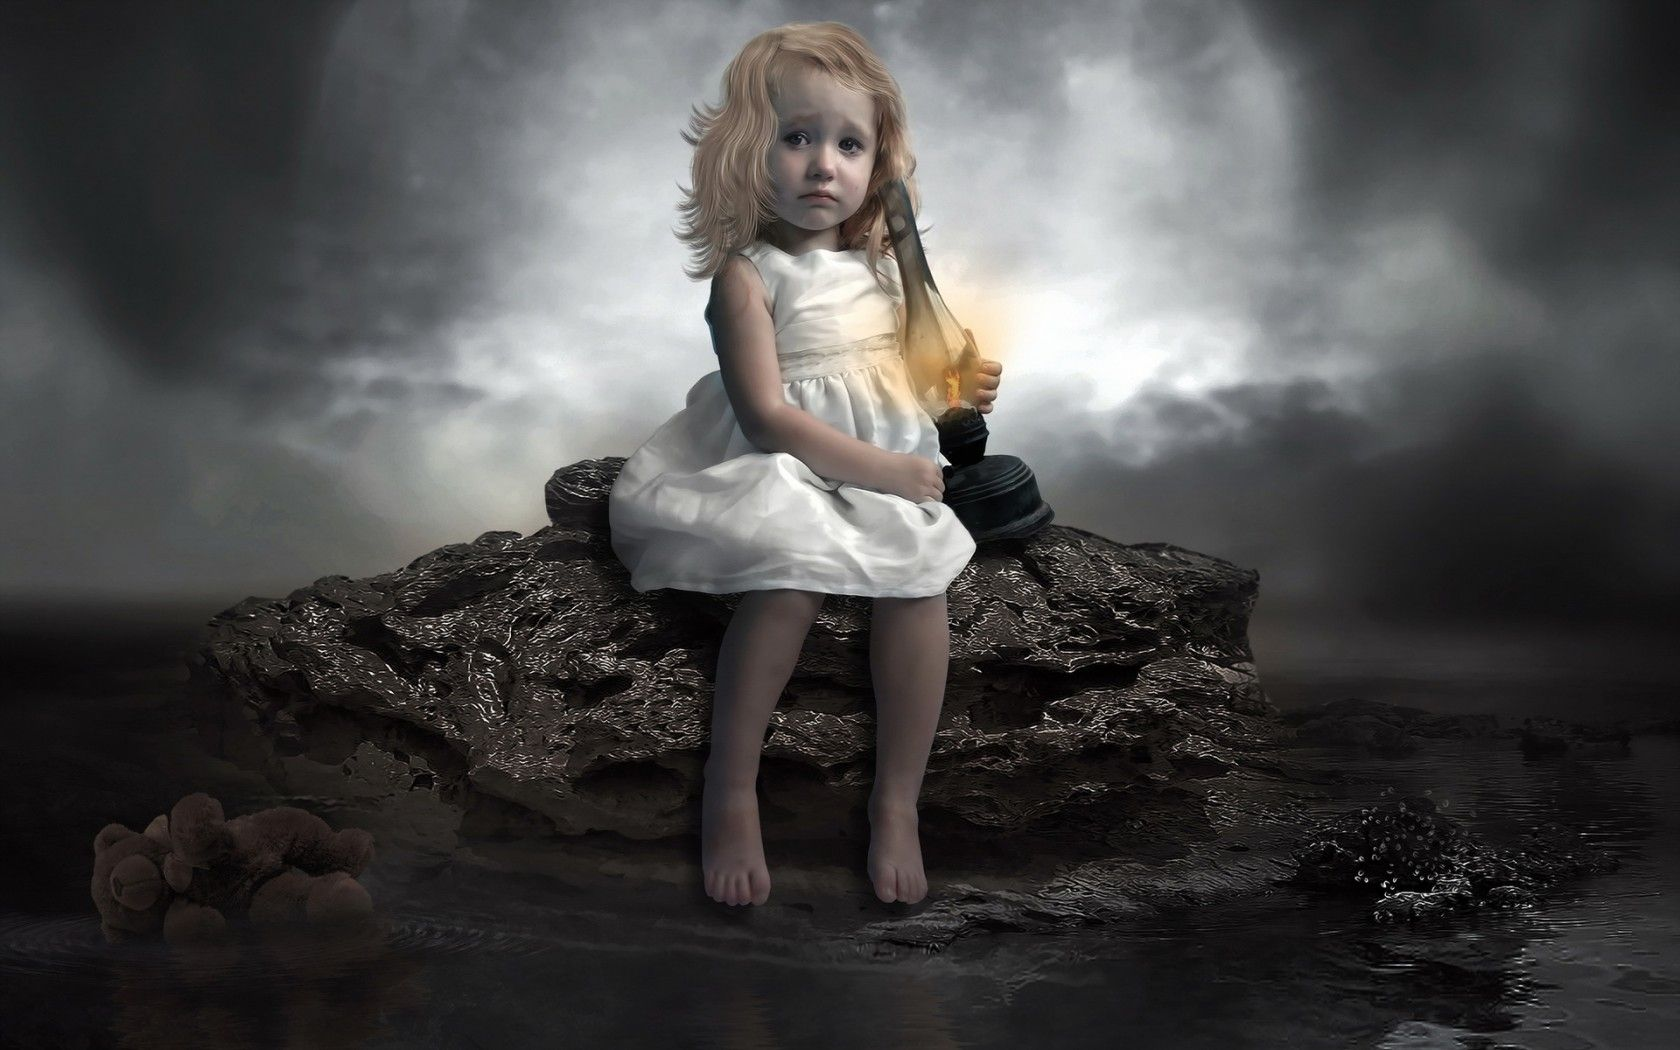 Child Dark Moon Sad Wallpaper. Download free cute baby